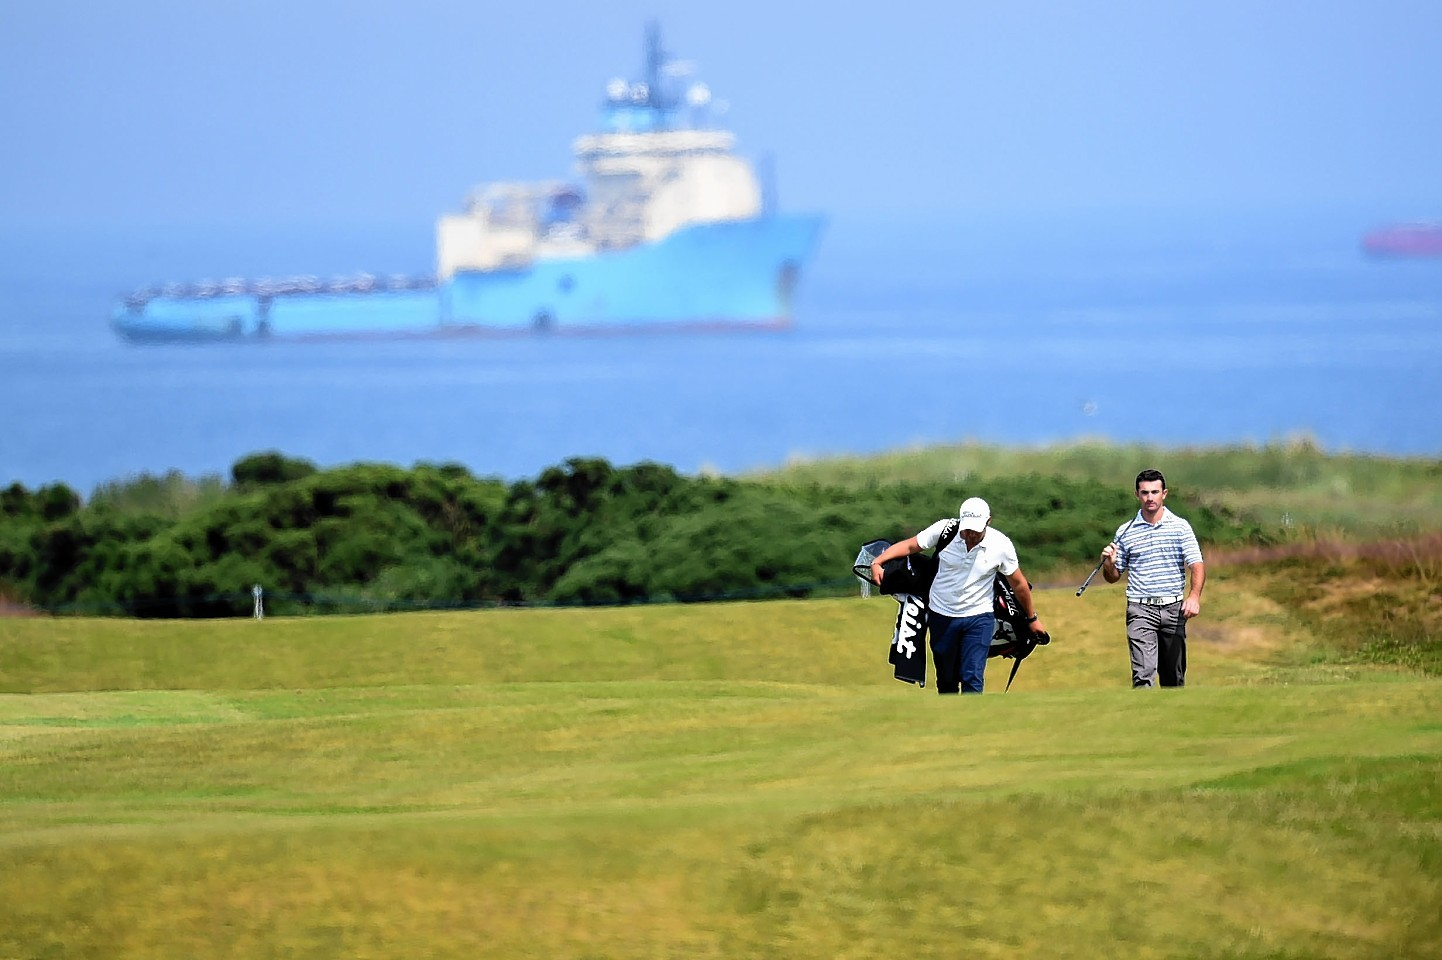 Many of the golfers arrived yesterday for the Scottish Open at Royal Aberdeen